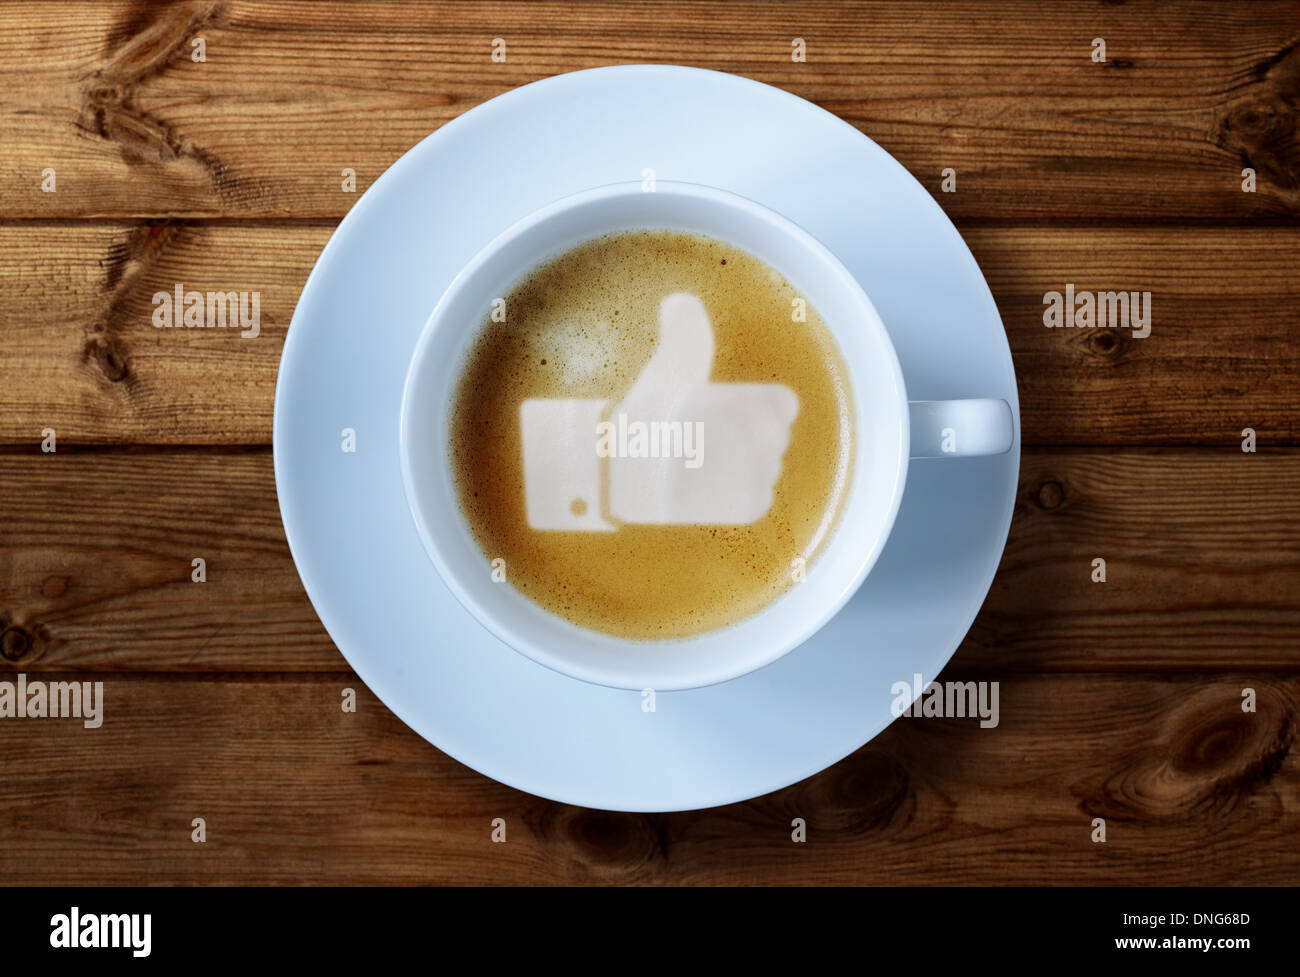 Thumbs up sign in coffee - Stock Image